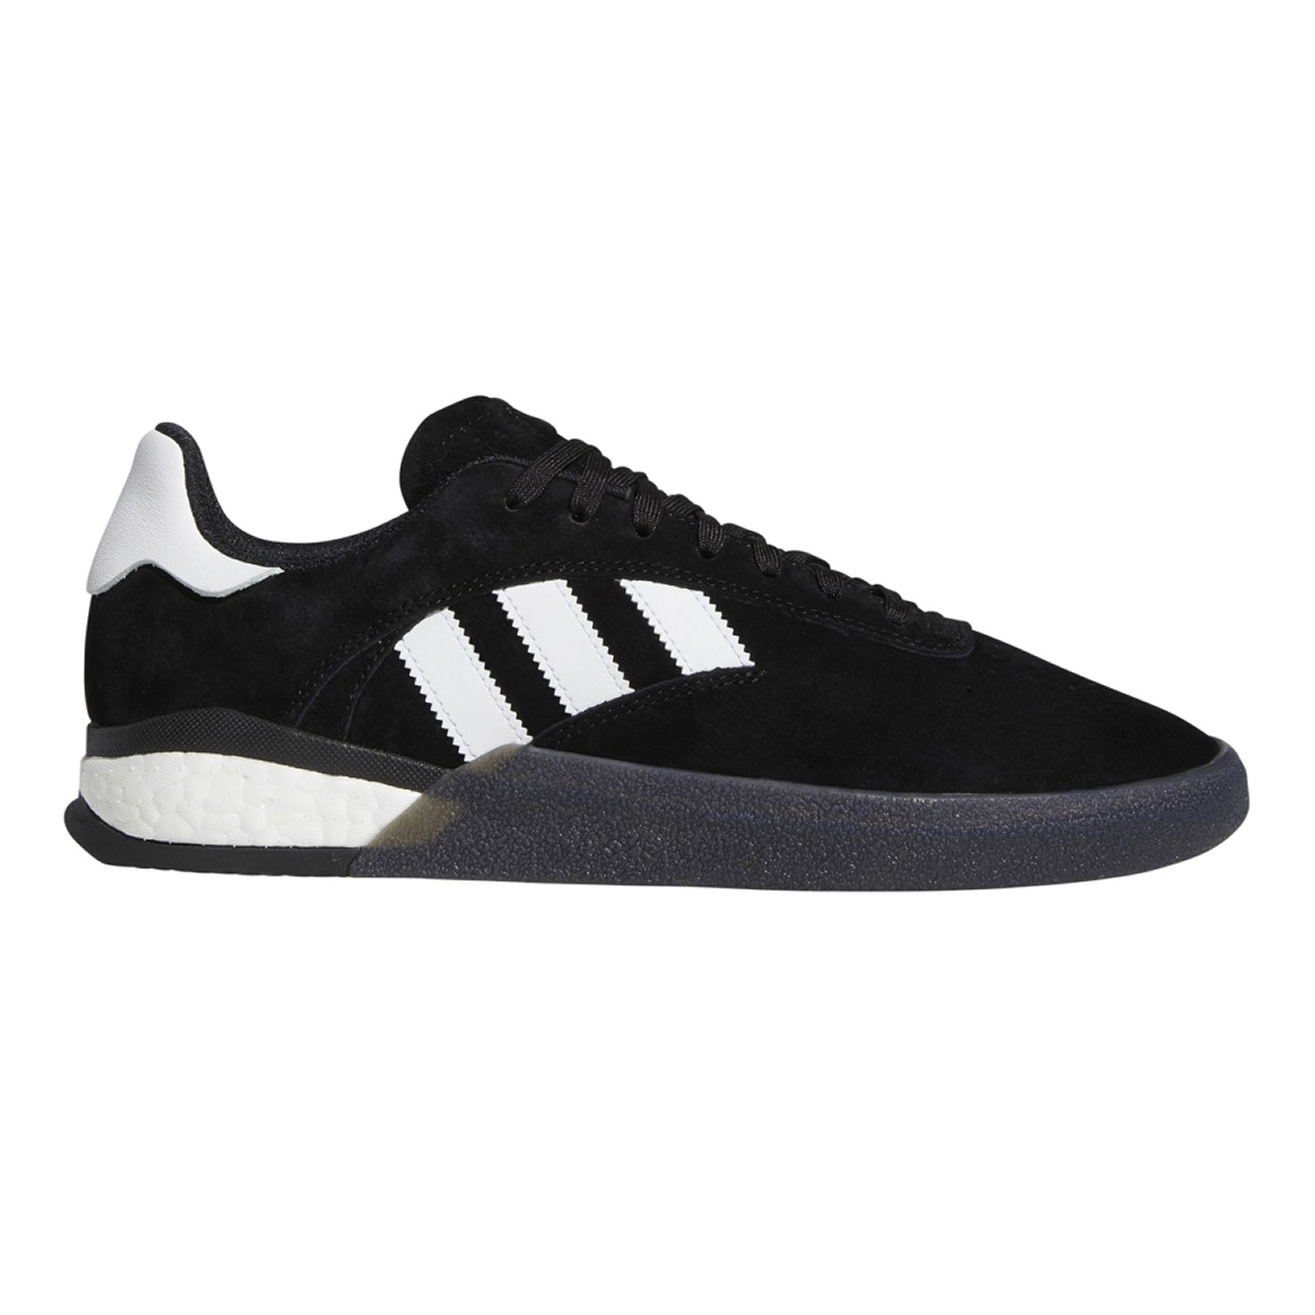 Adidas 3ST.004 Black/White